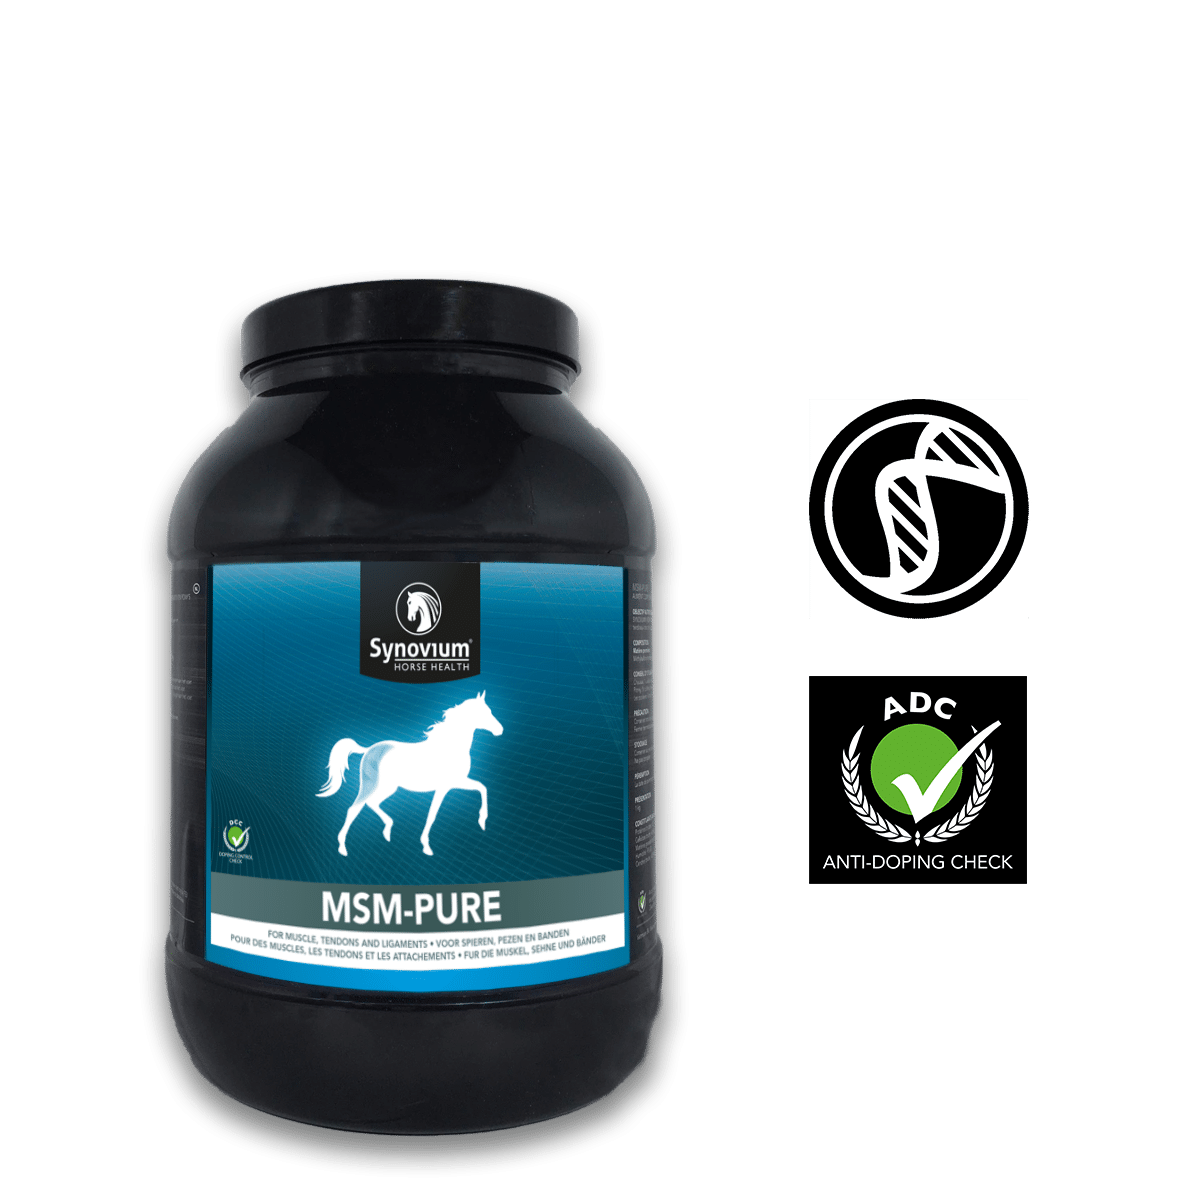 100% pure MSM horse supplement by Synovium